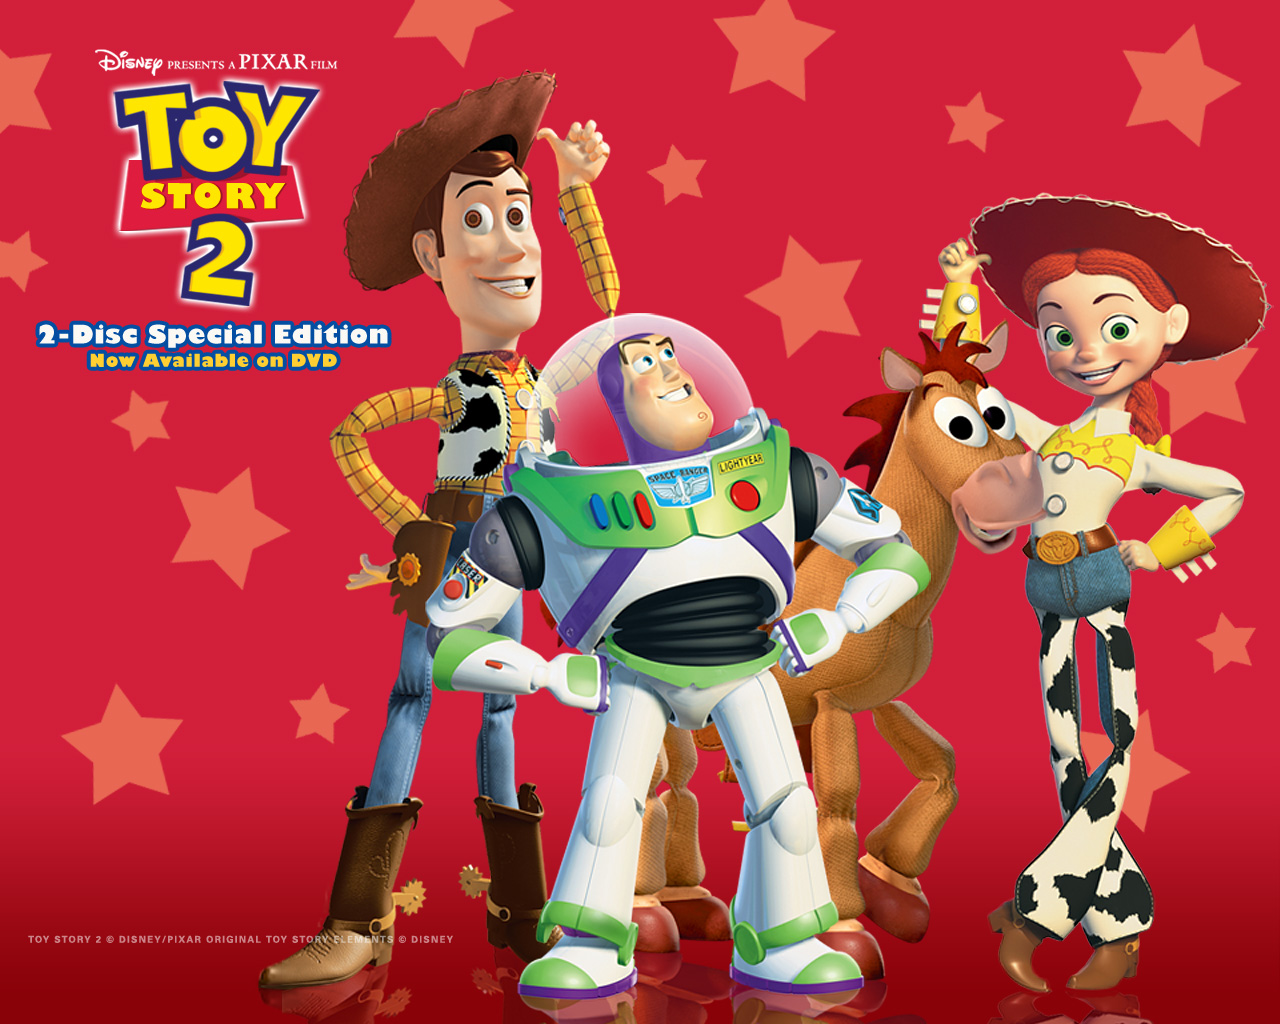 Toy Story 2 Toy Story 2 Wallpaper 36440636 Fanpop